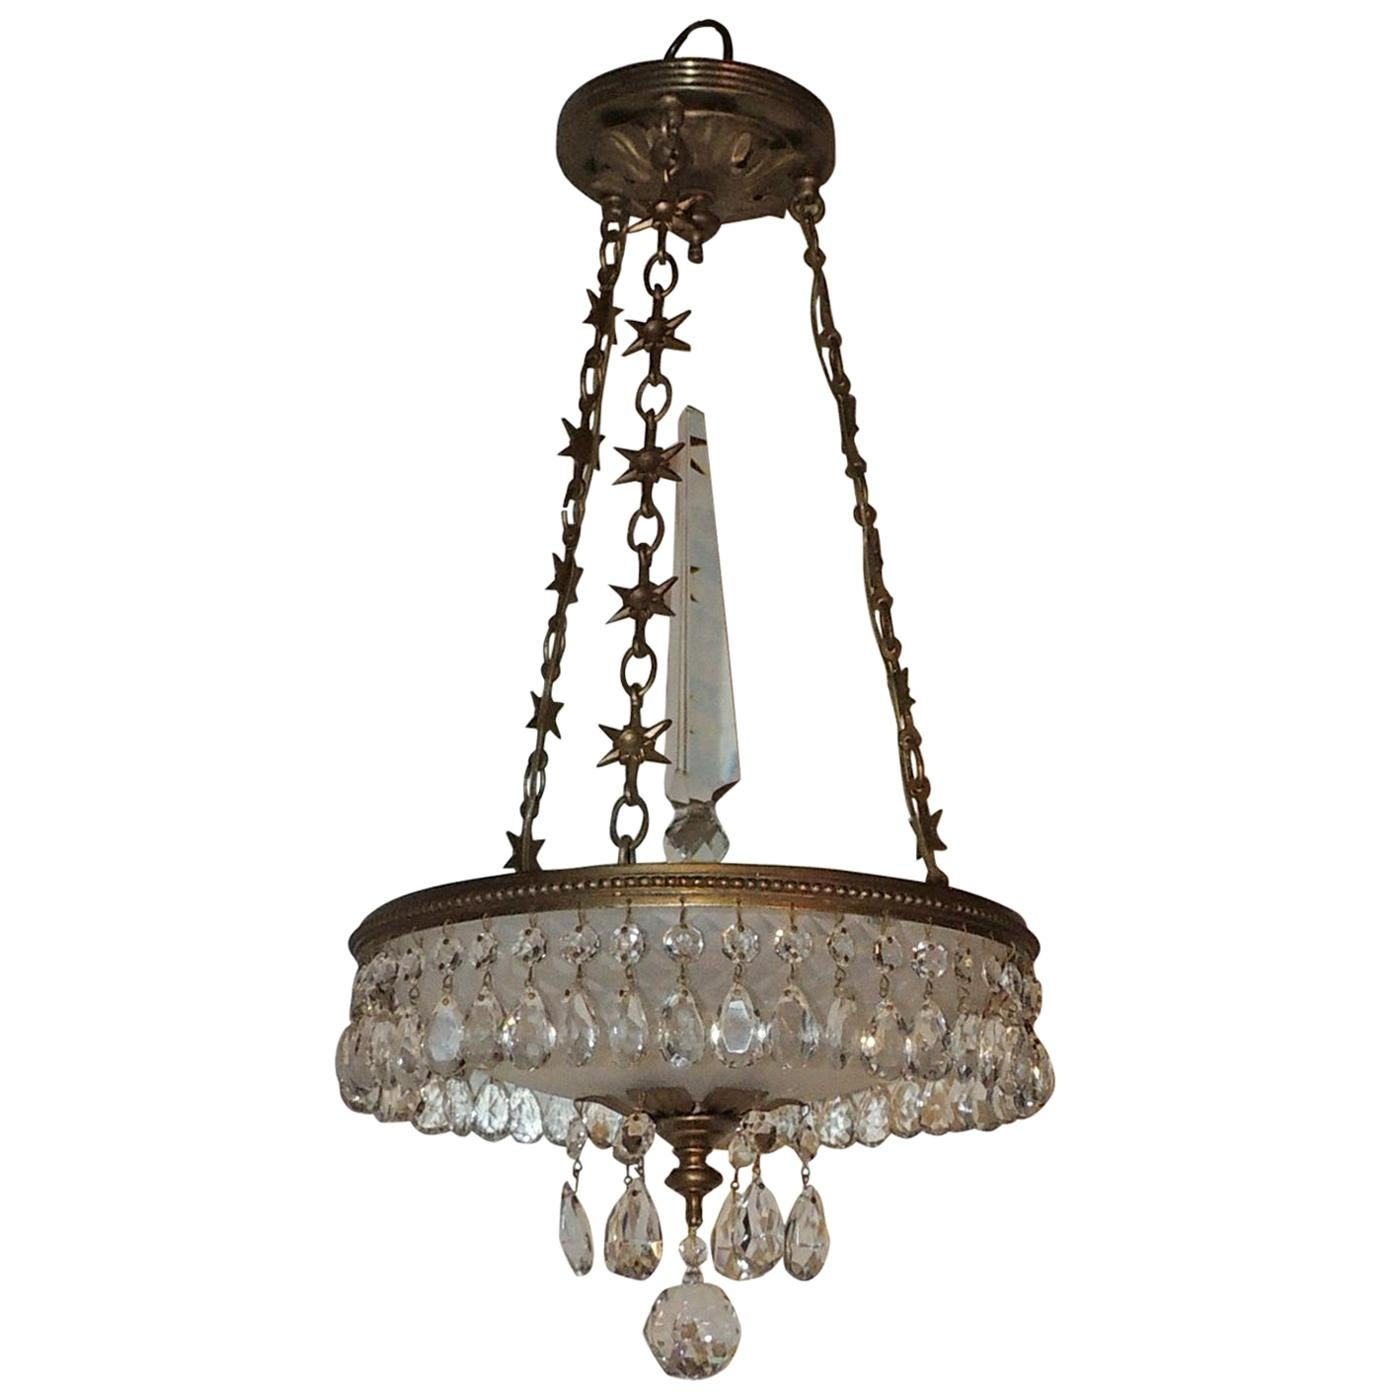 Petite Baltic French Dore Bronze Star Frosted Crystal Chandelier Fixture Pendent